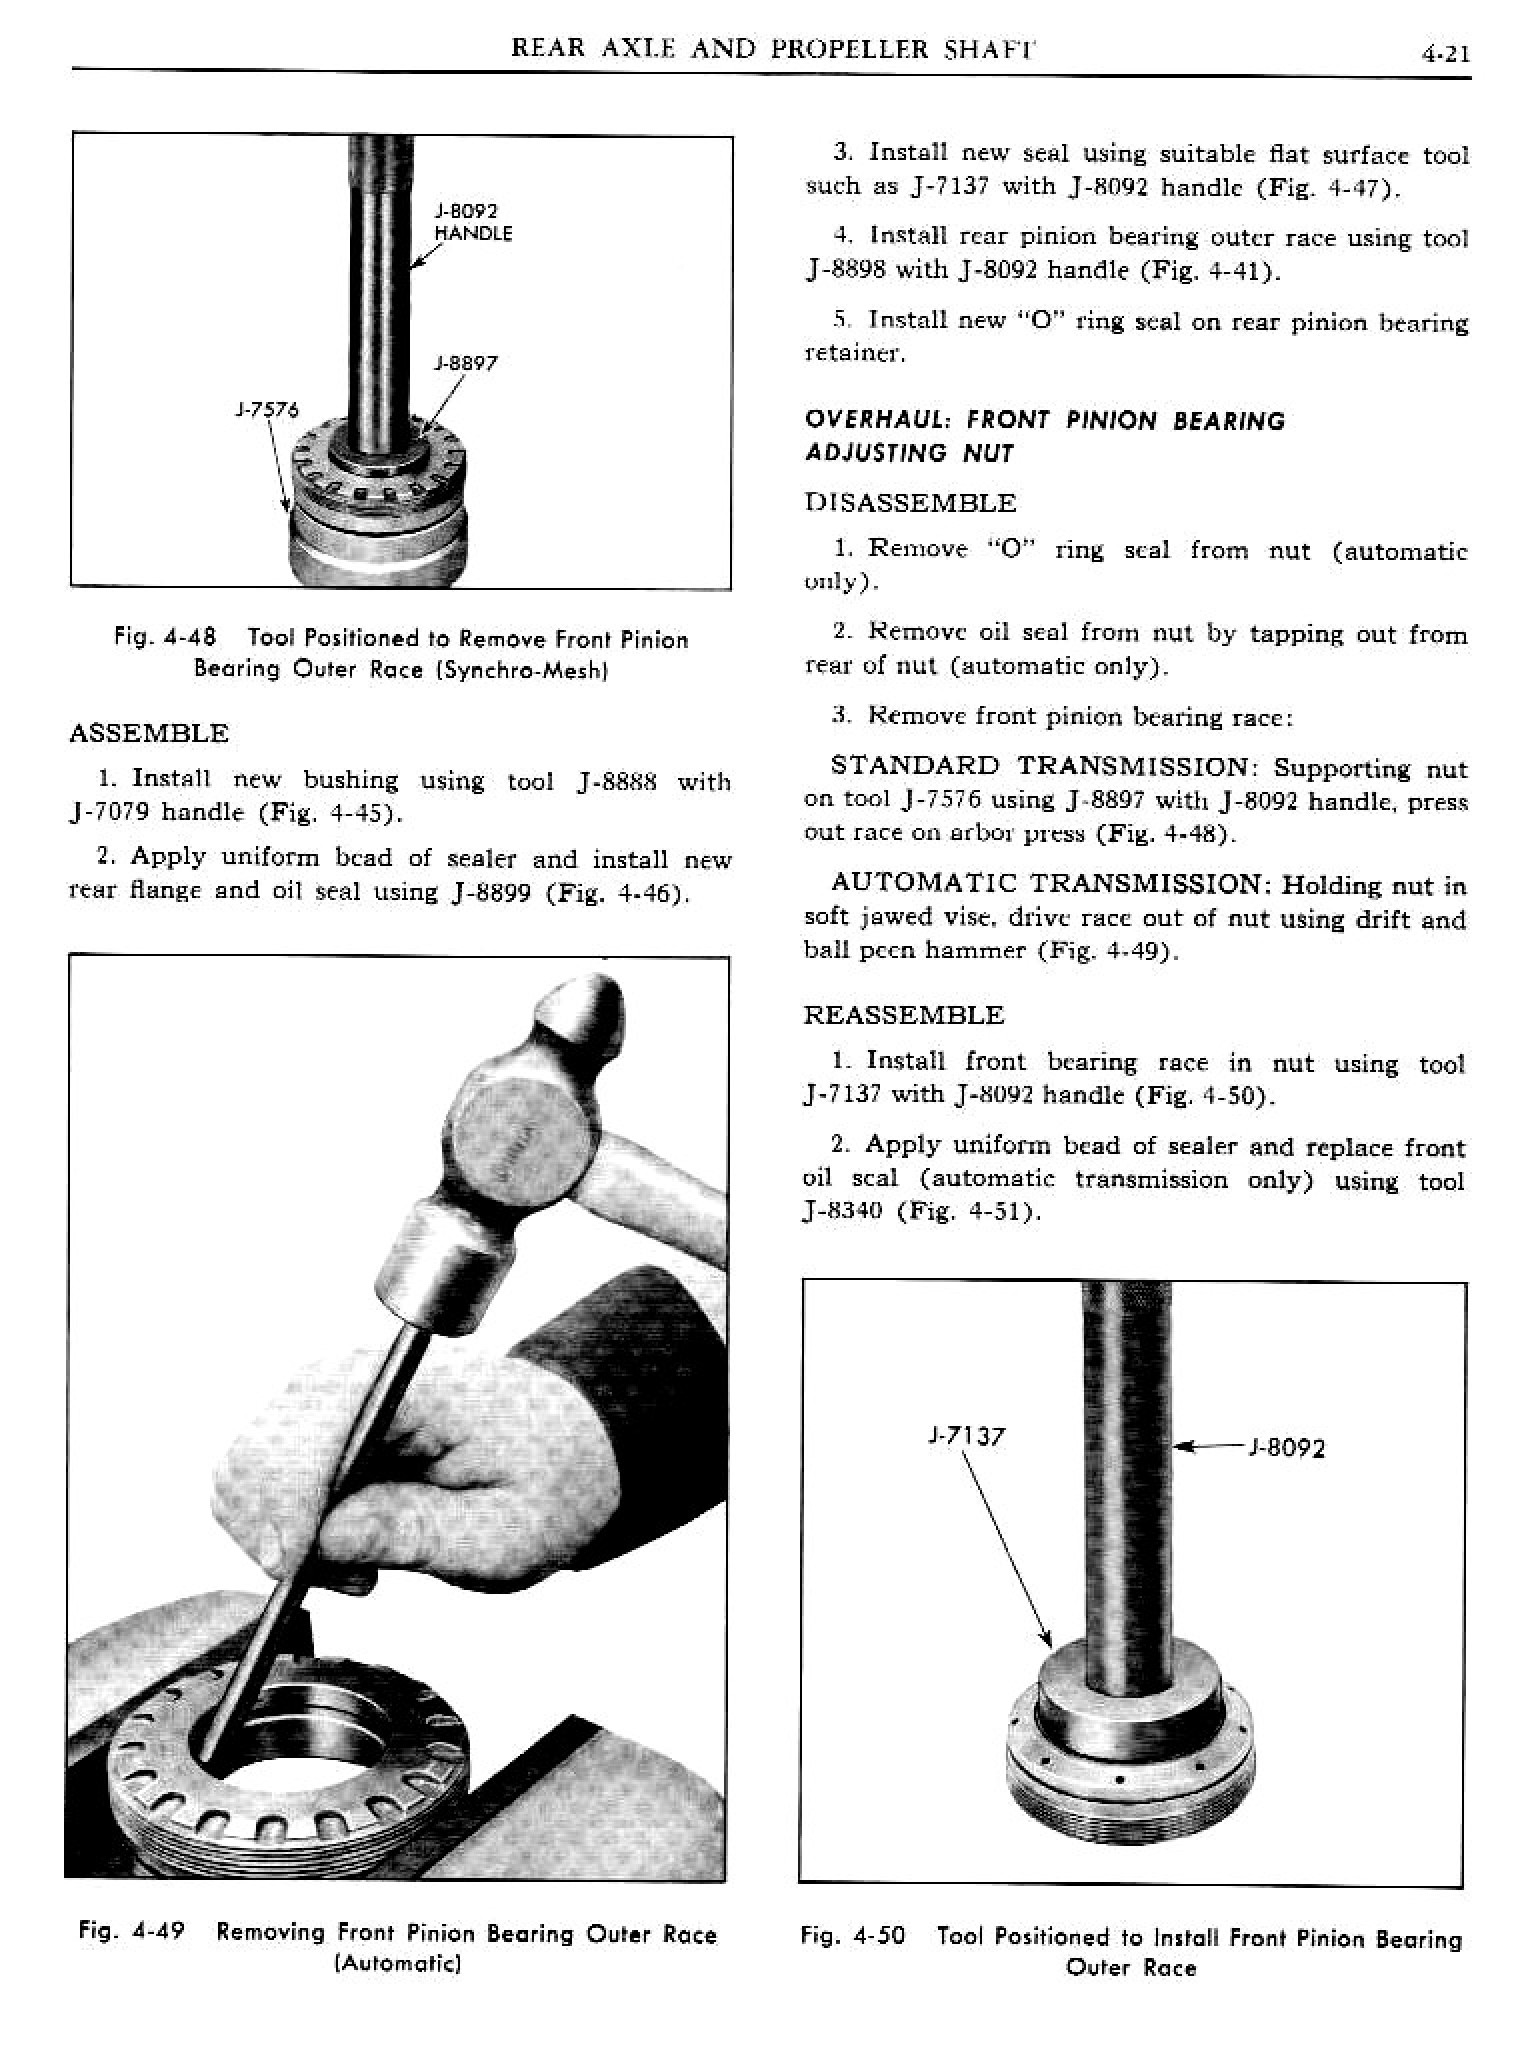 1961 Pontiac Tempest Shop Manual- Rear Axle Page 21 of 28